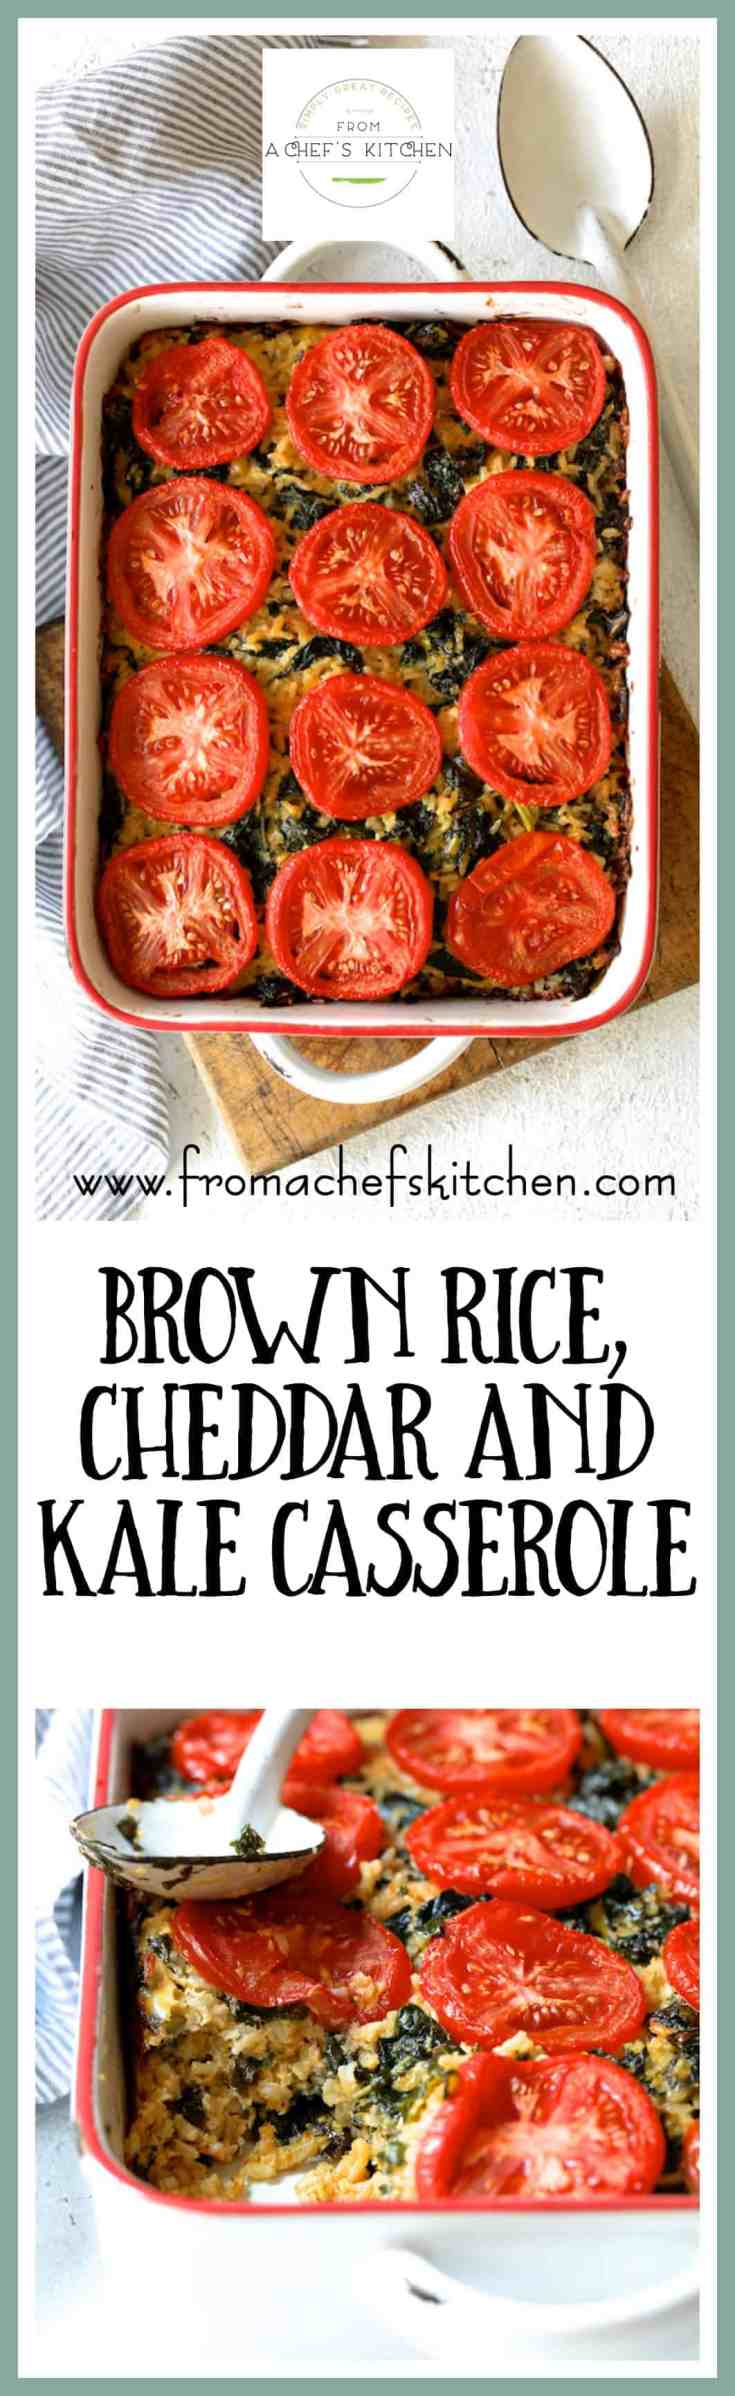 Brown Rice Cheddar and Kale Casserole is perfect meatless comfort food that's also super versatile!  Vary the grains and vary the greens!  #brownrice #cheddar #kale #casserole #vegetarian